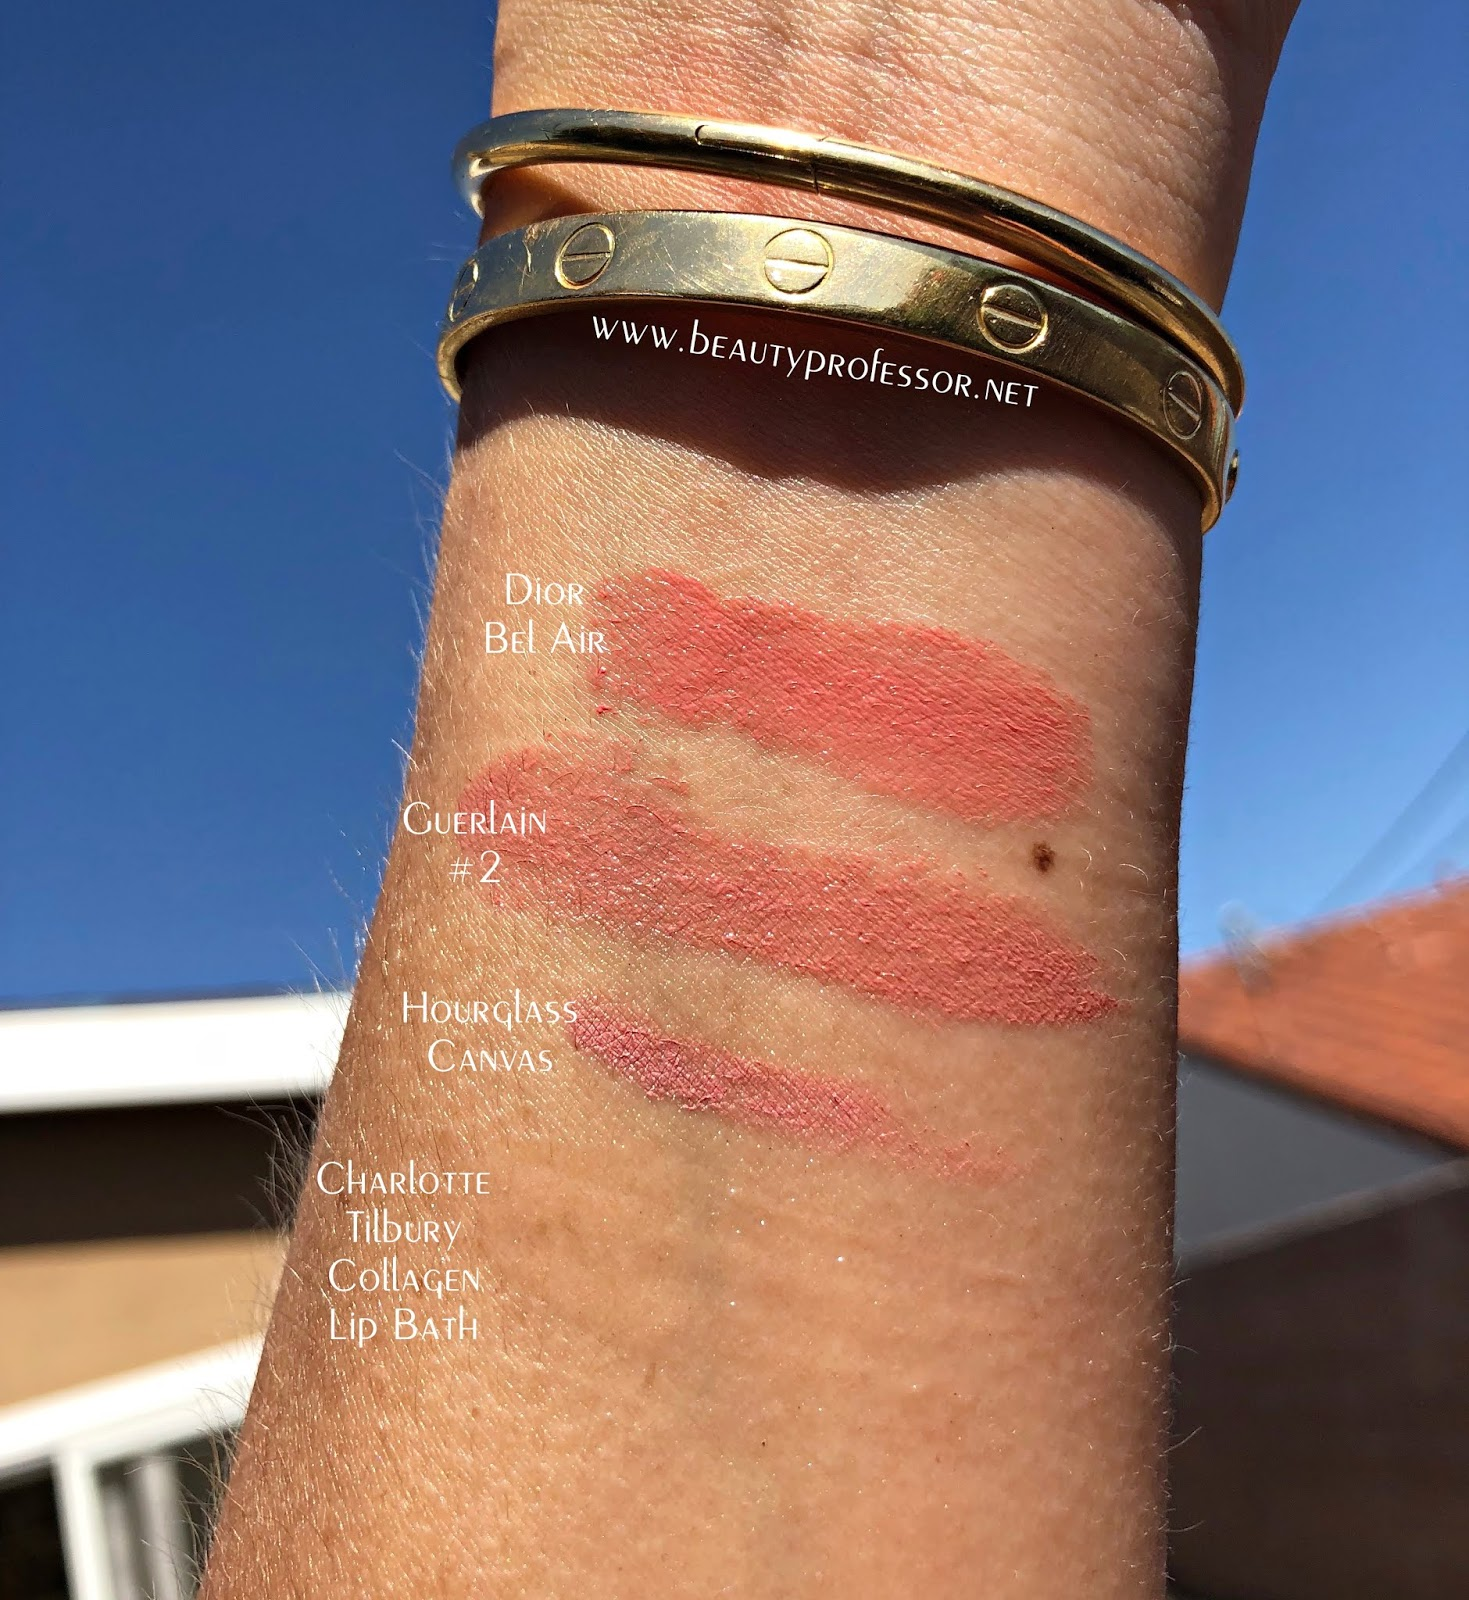 charlotte tilbury collagen lip bath swatch